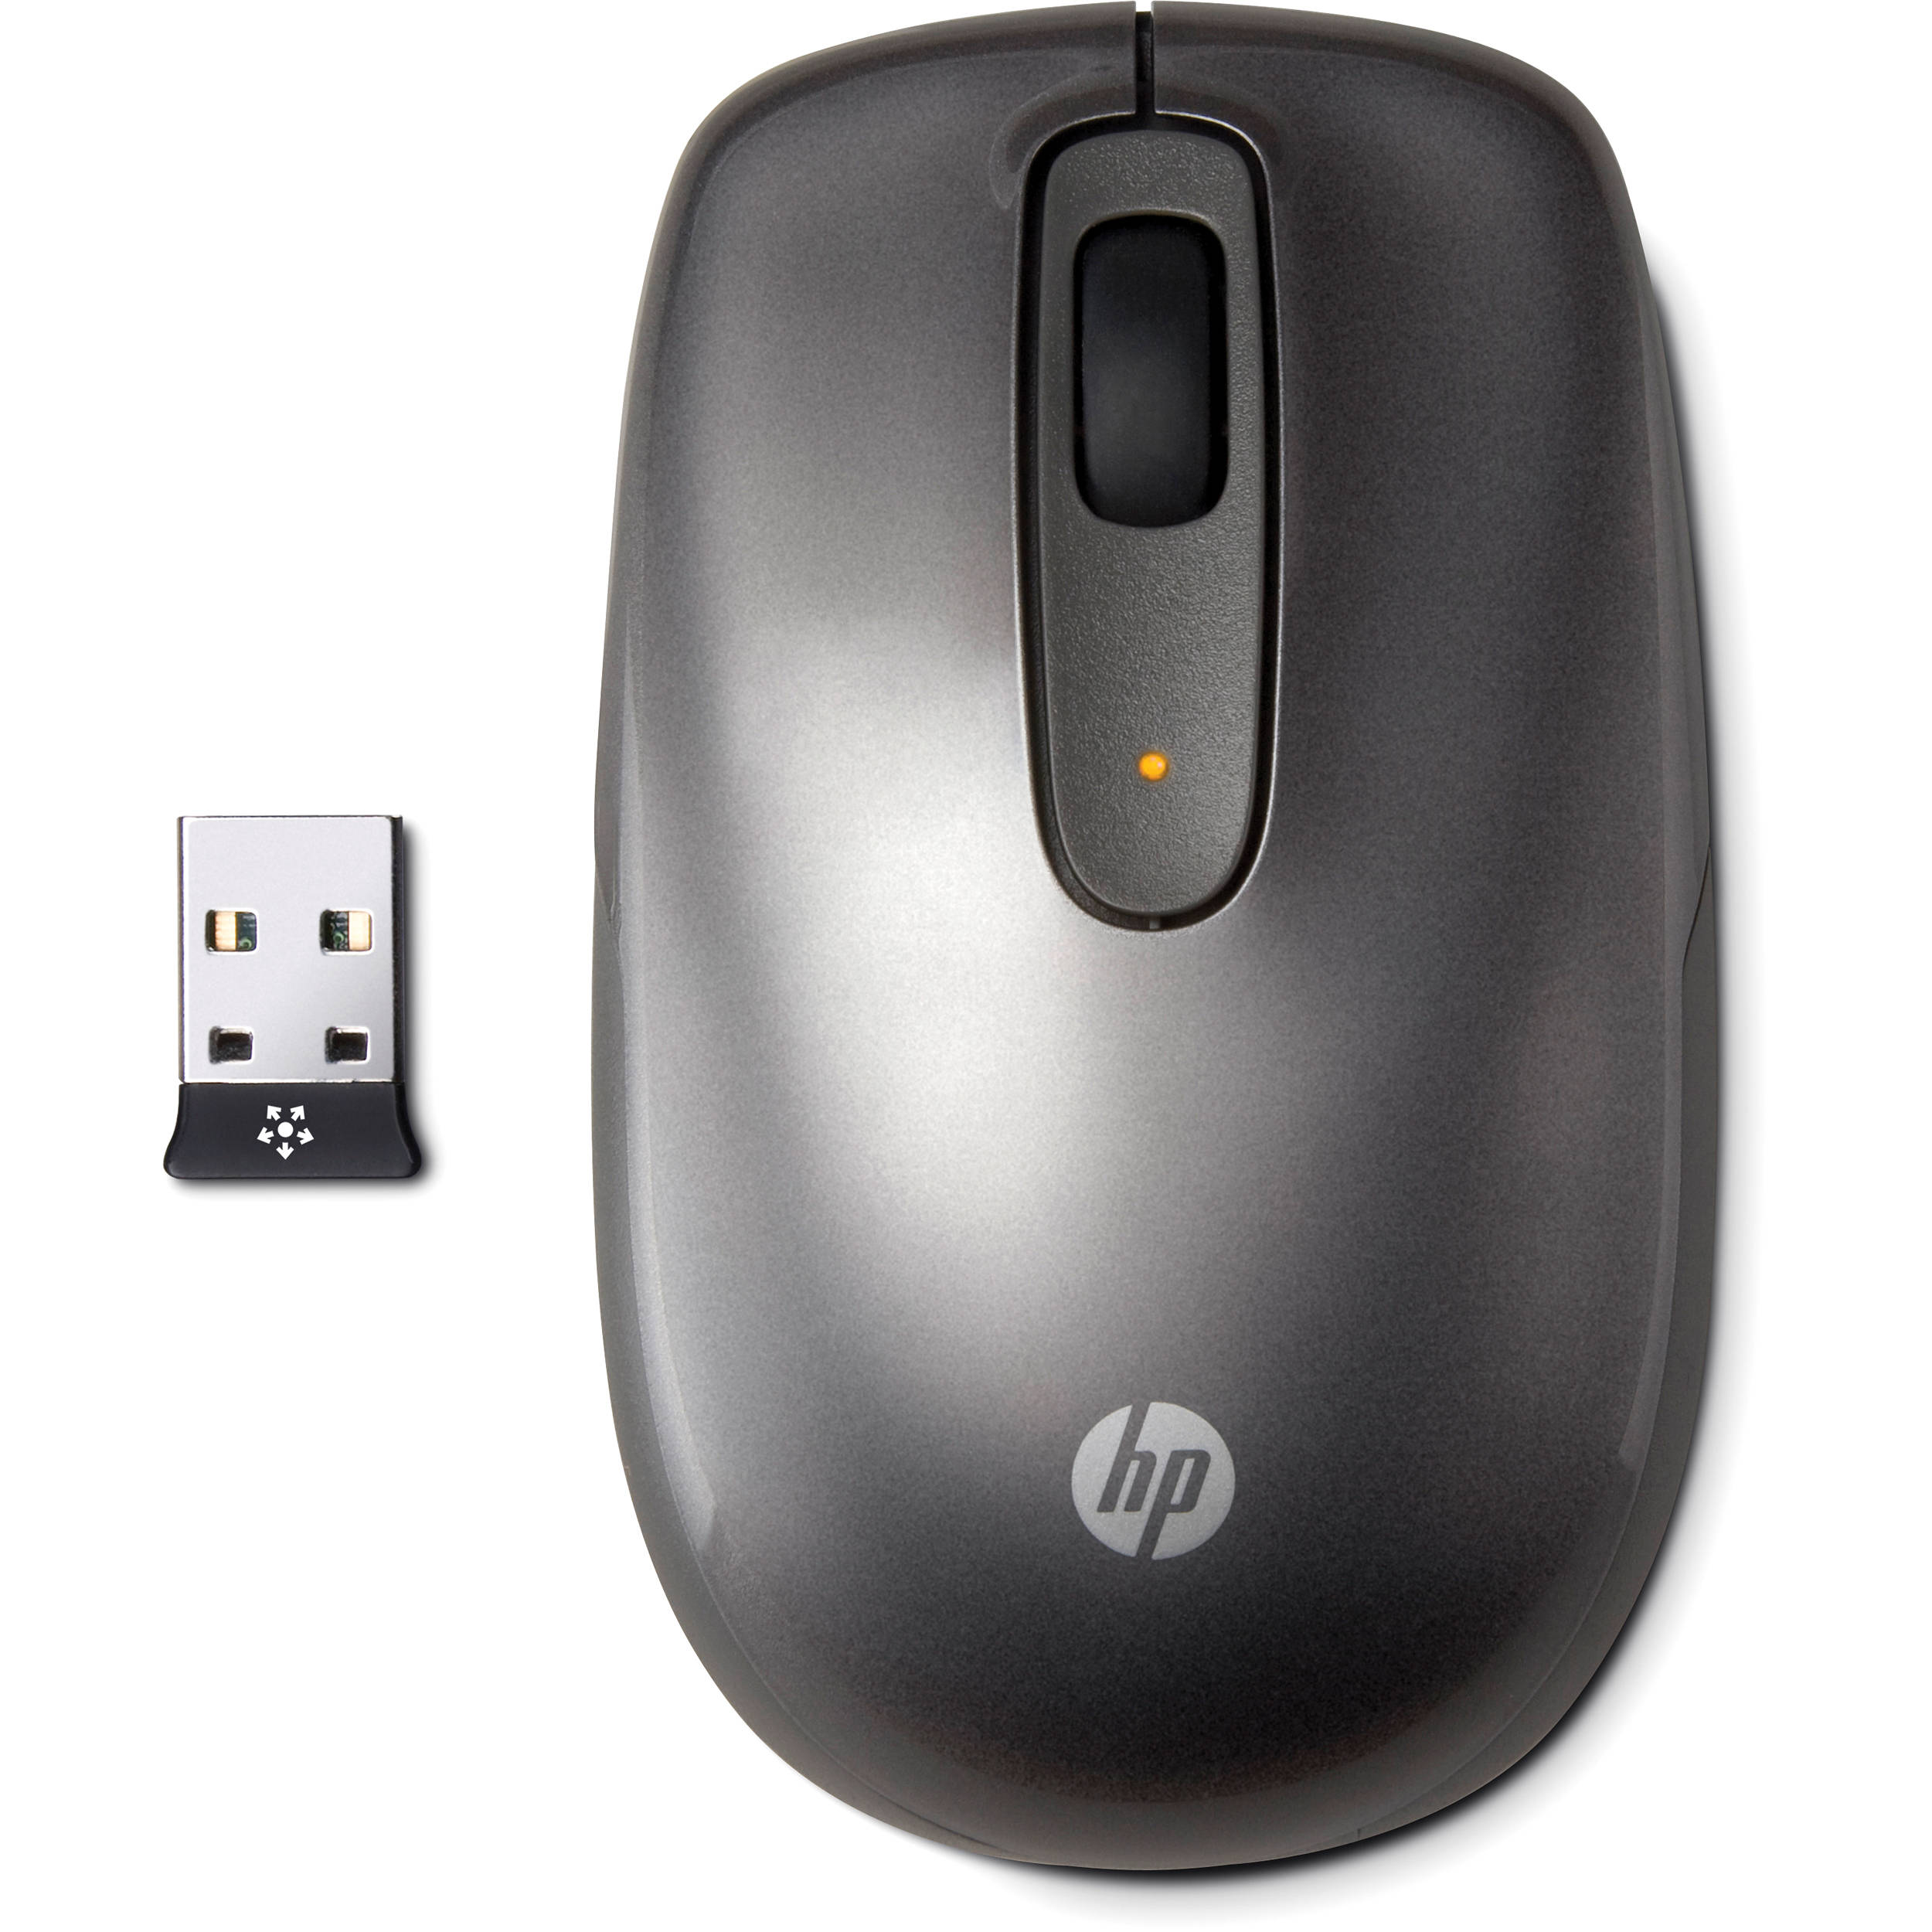 HP 2.4GHZ WIRELESS LASER MOBILE MOUSE WINDOWS 8 X64 DRIVER DOWNLOAD